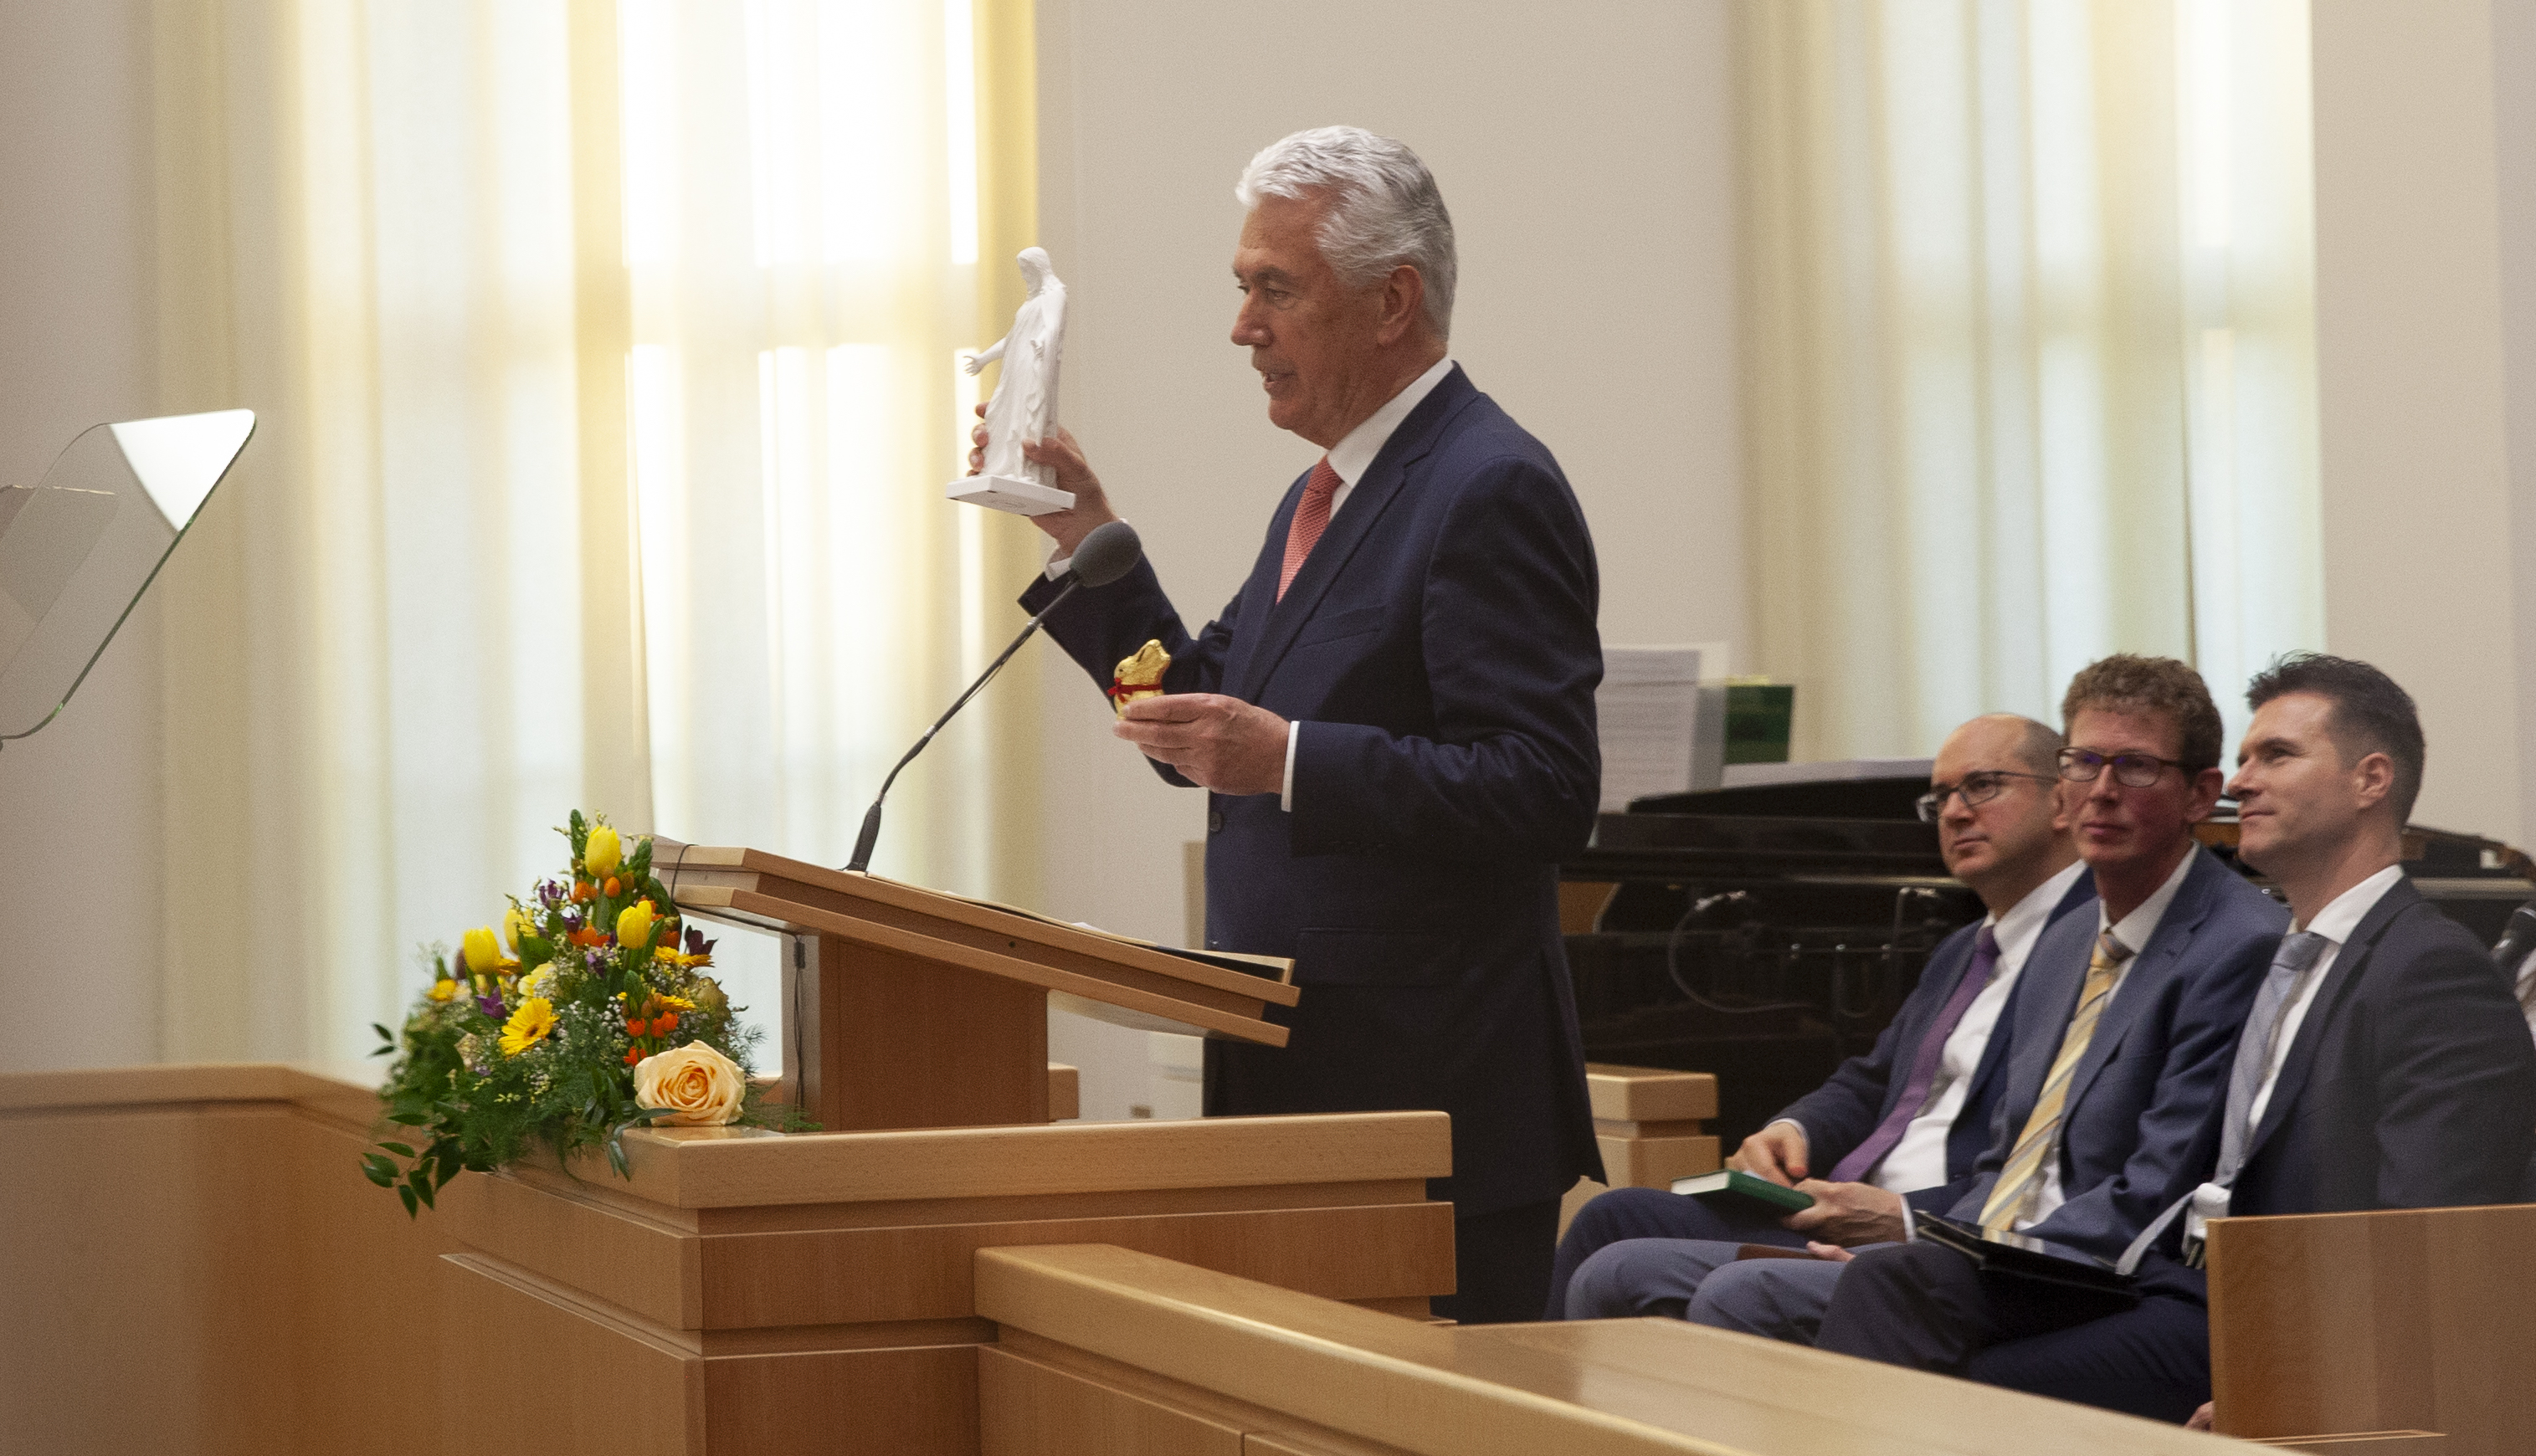 Elder Dieter F. Uchtdorf of the Quorum of the Twelve Apostles, holds a Lindt chocolate bunny in one hand and a small Christus statue in the other as he speaks of the importance of Easter during the April 20, 2019, regional Face to Face broadcast with German-speaking Latter-day Saints in Europe. The broadcast originated in Frankfurt, Germany.